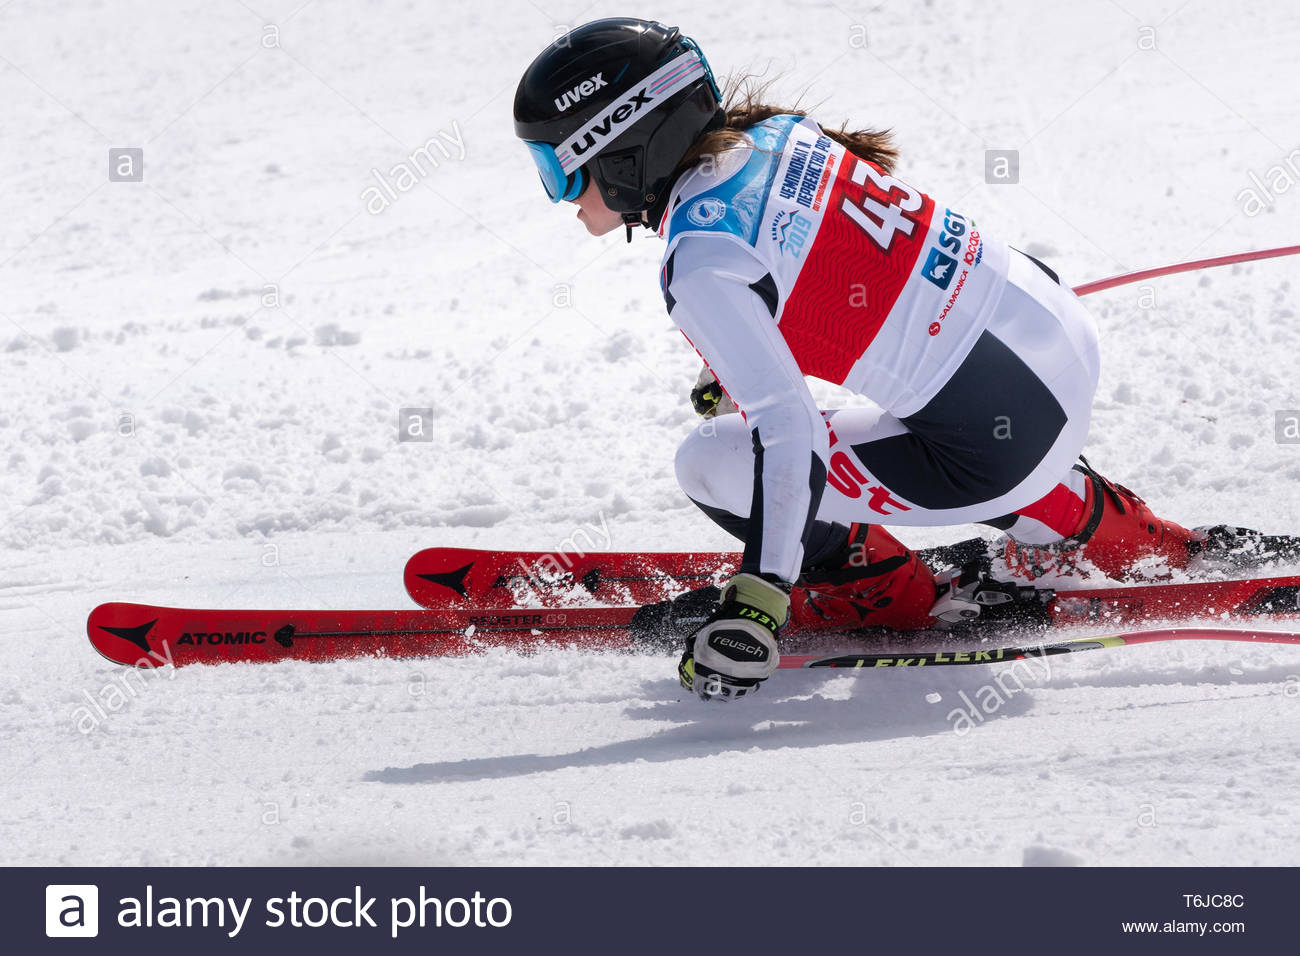 KAMCHATKA PENINSULA, RUSSIAN FEDERATION - APRIL 1, 2019: Russian Women's Alpine Skiing Championship giant slalom. Mountain skier Dyachenko Ellina (Sak - Stock Image